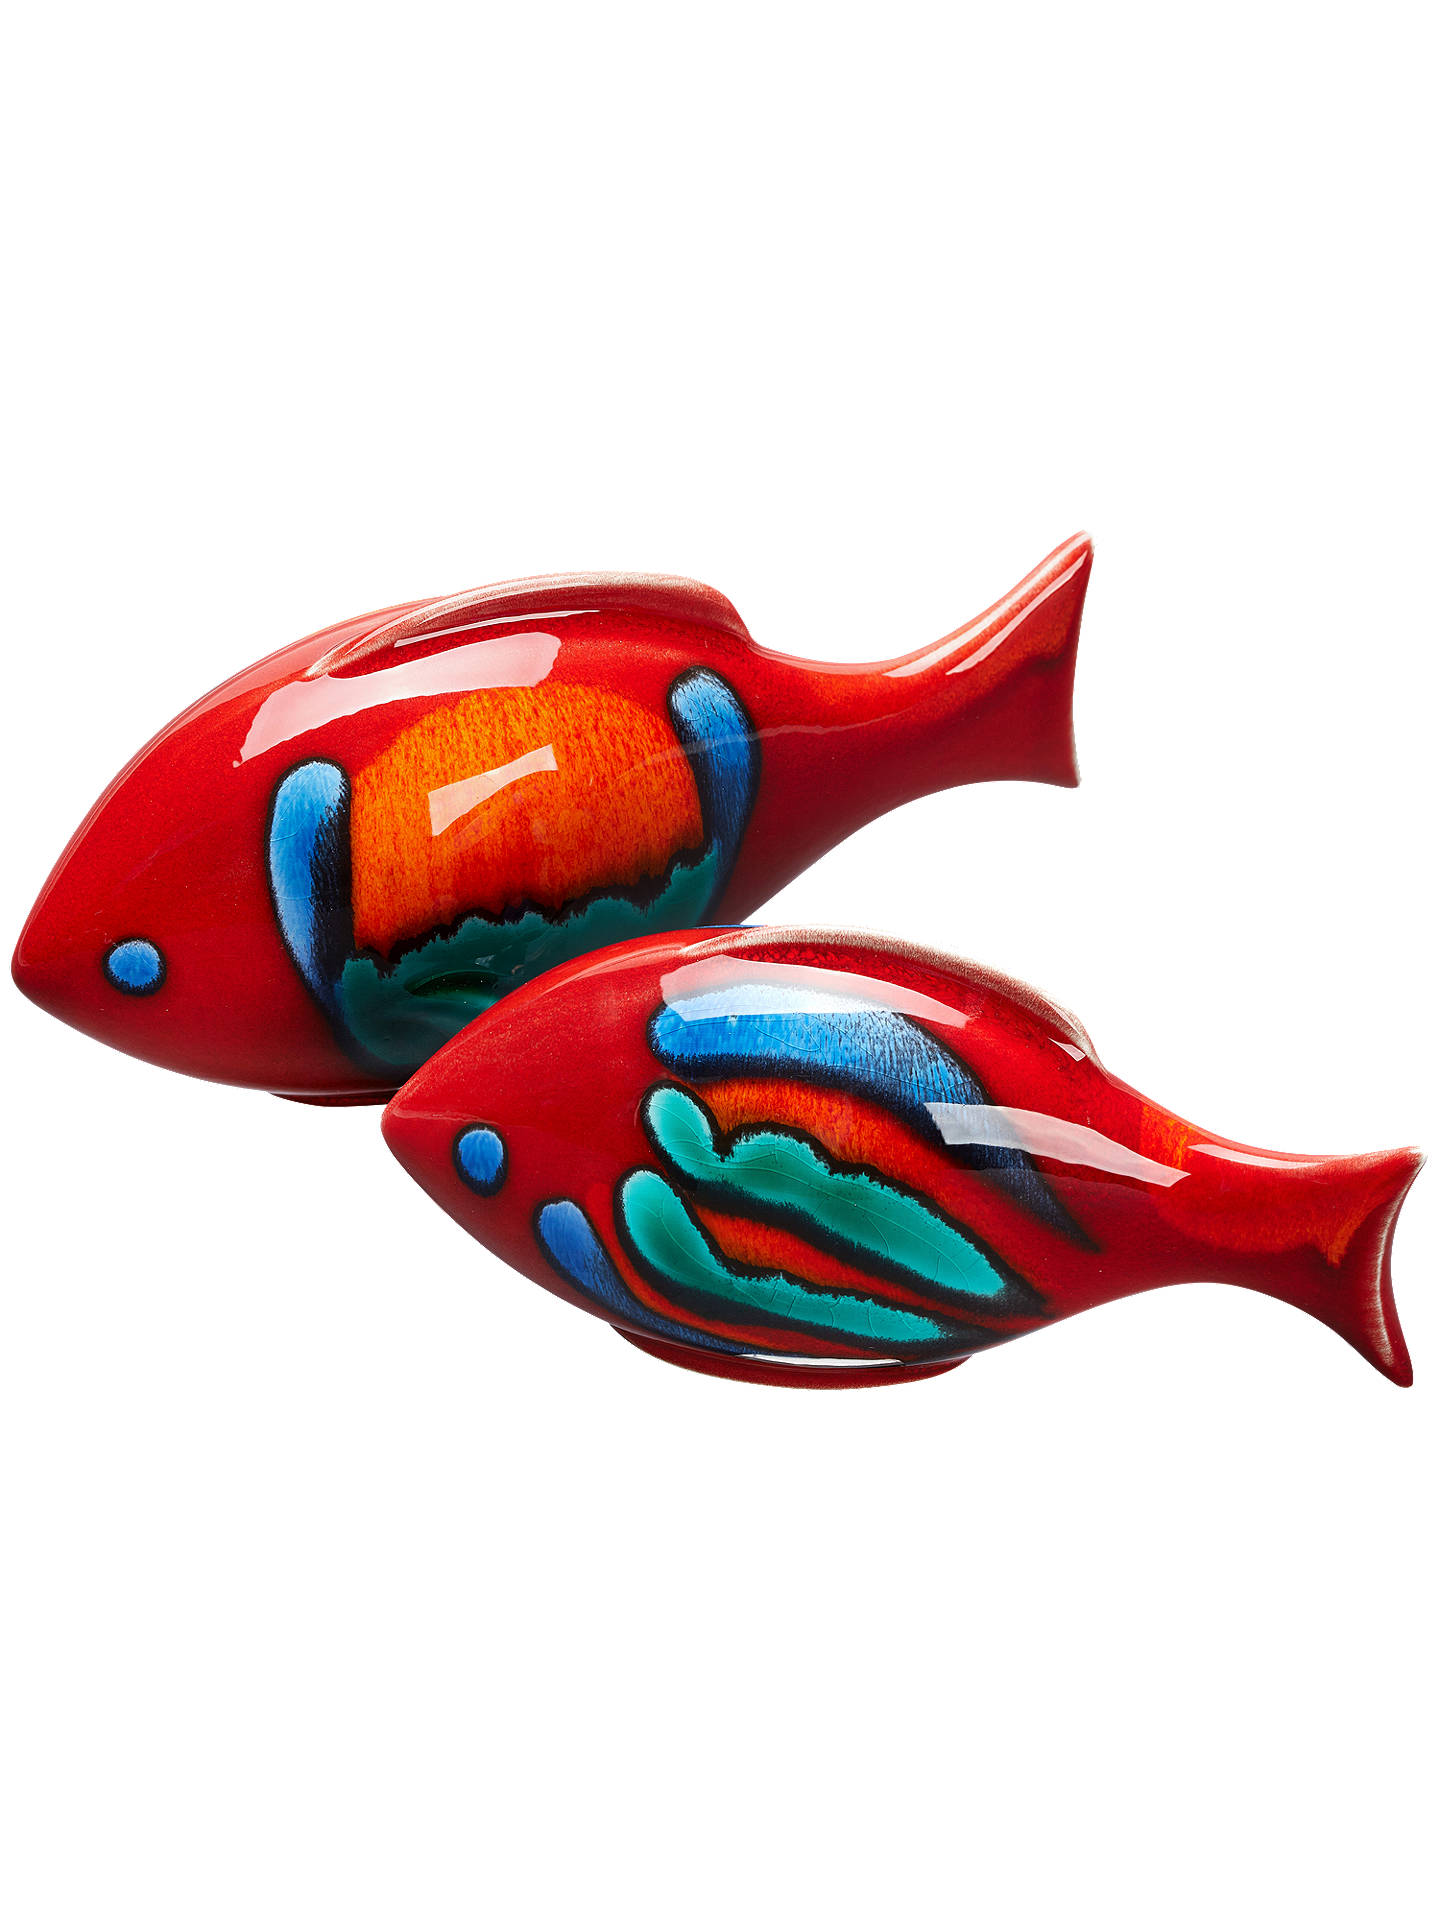 Buy Poole Pottery Volcano Fish, Set of 2 Online at johnlewis.com